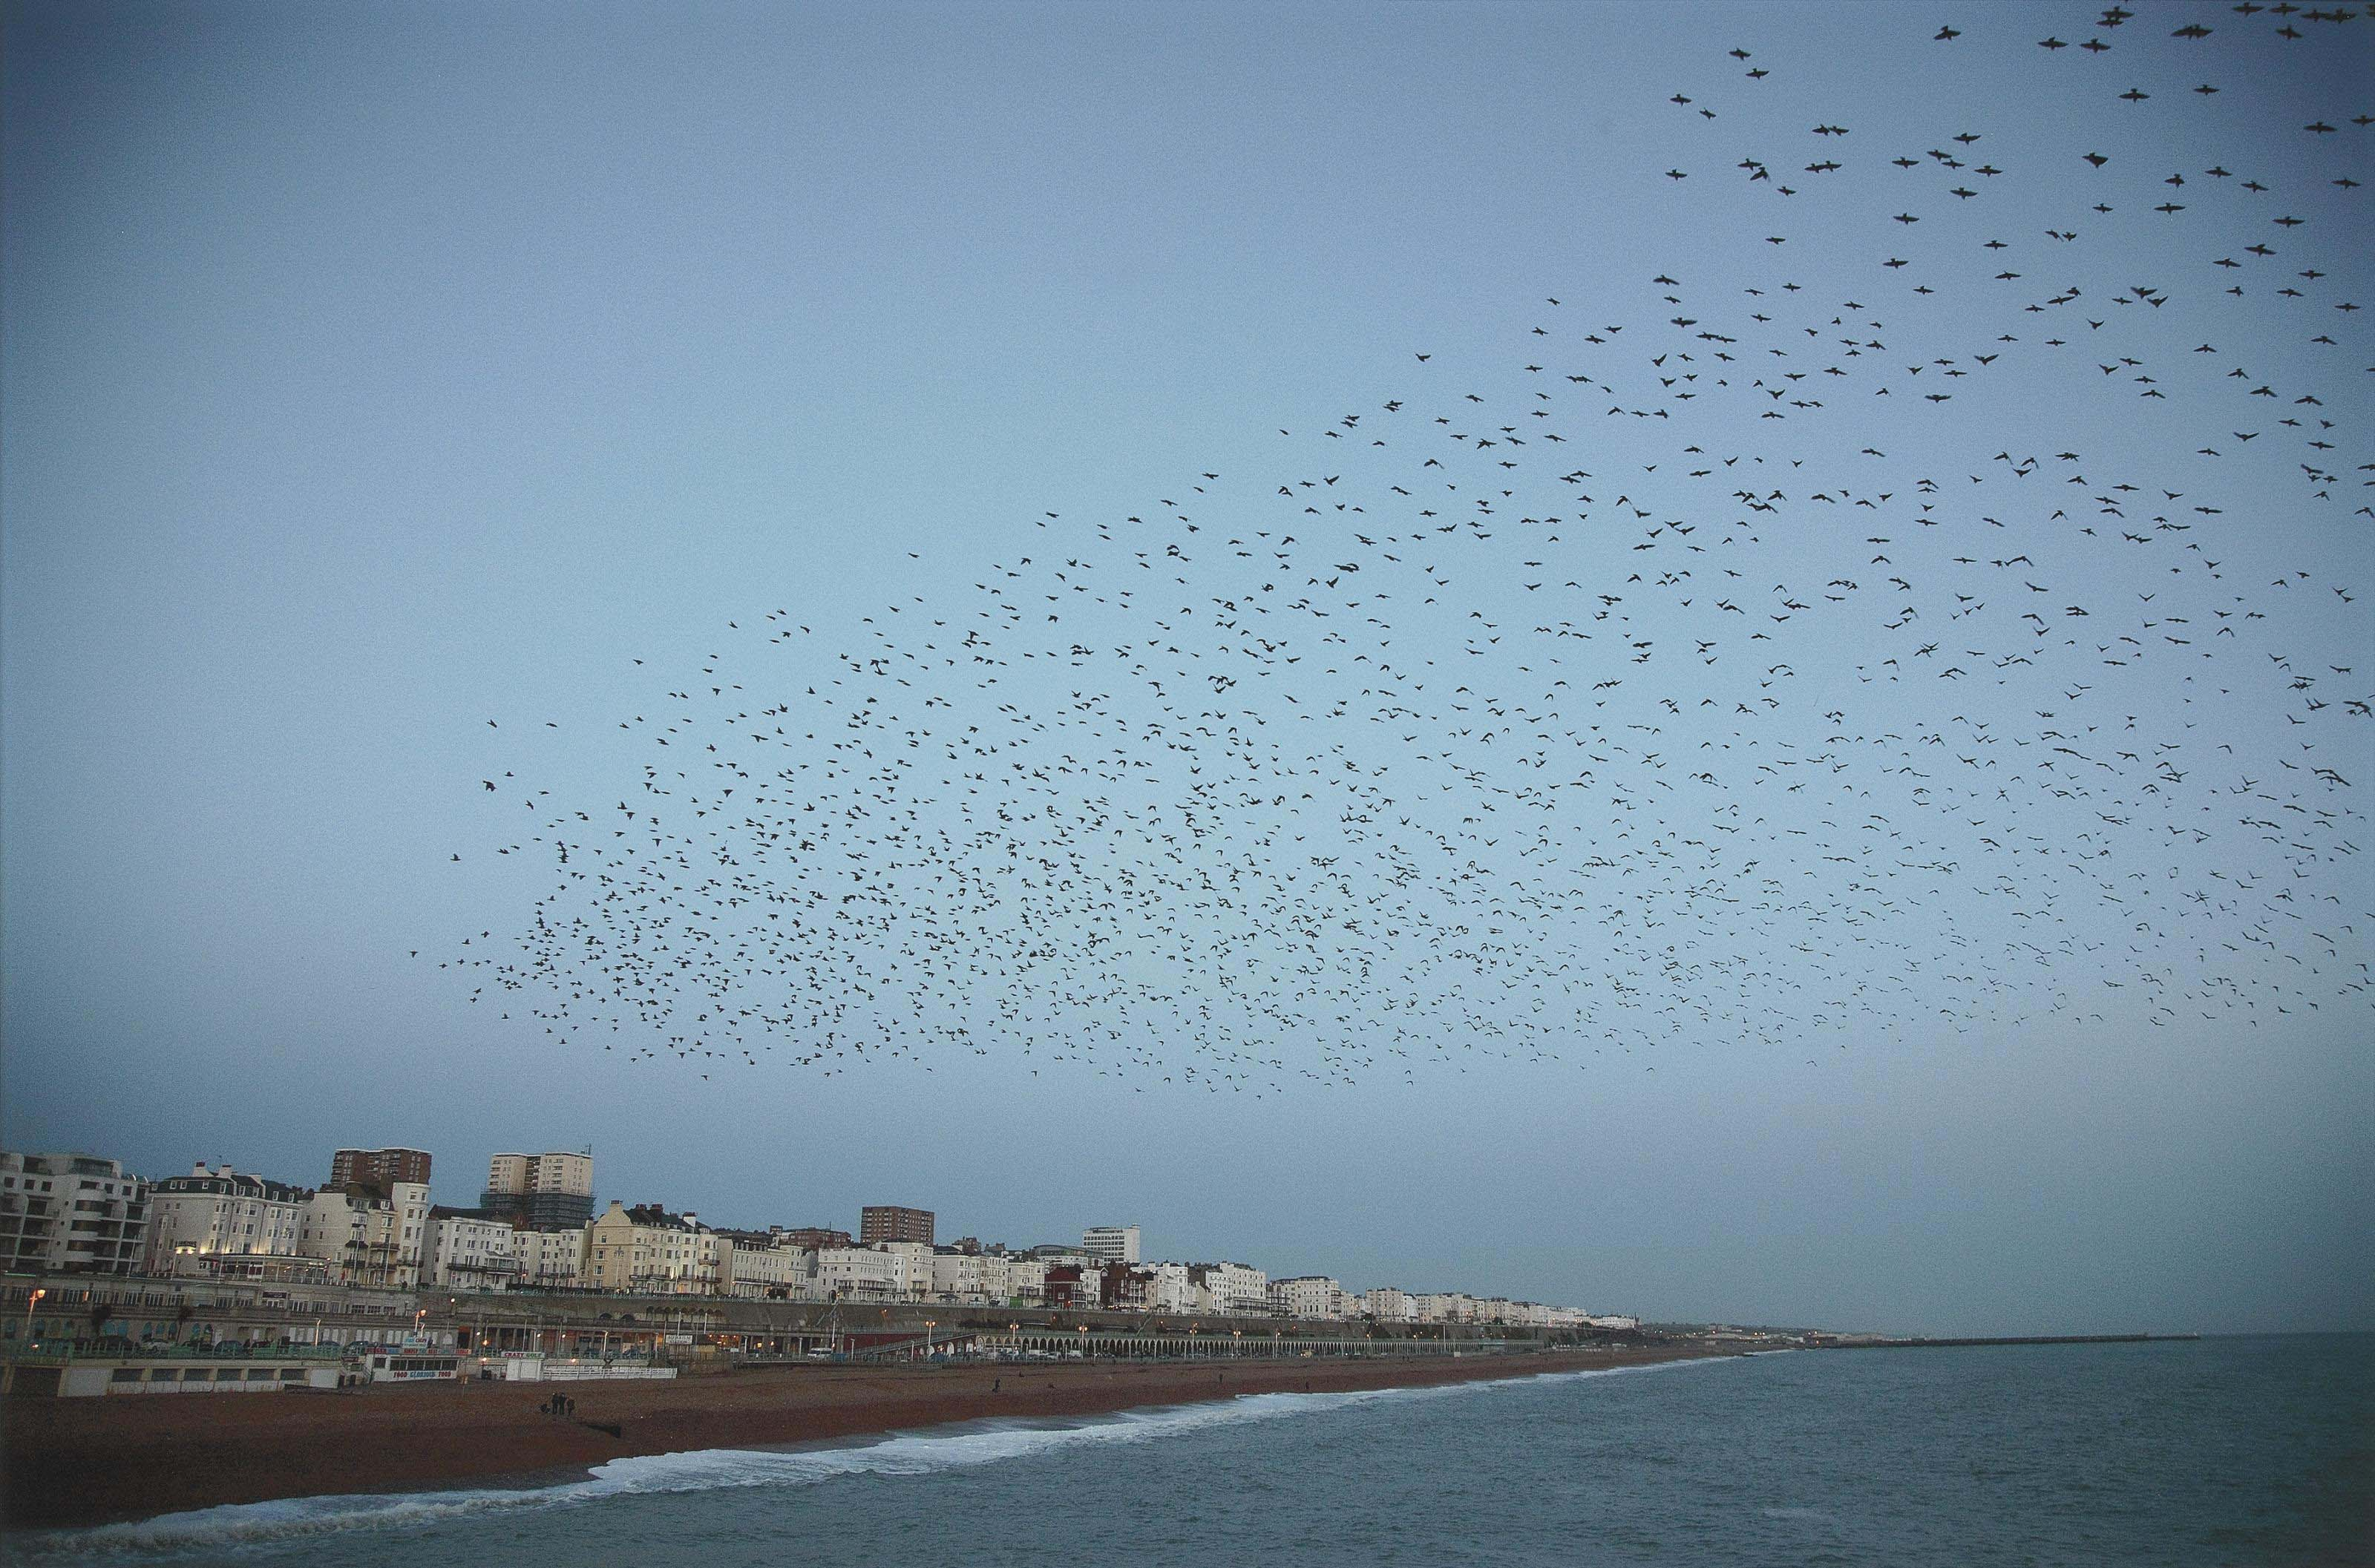 Untitled (Starlings over Brighton), from the series 'Murmuration', 2010